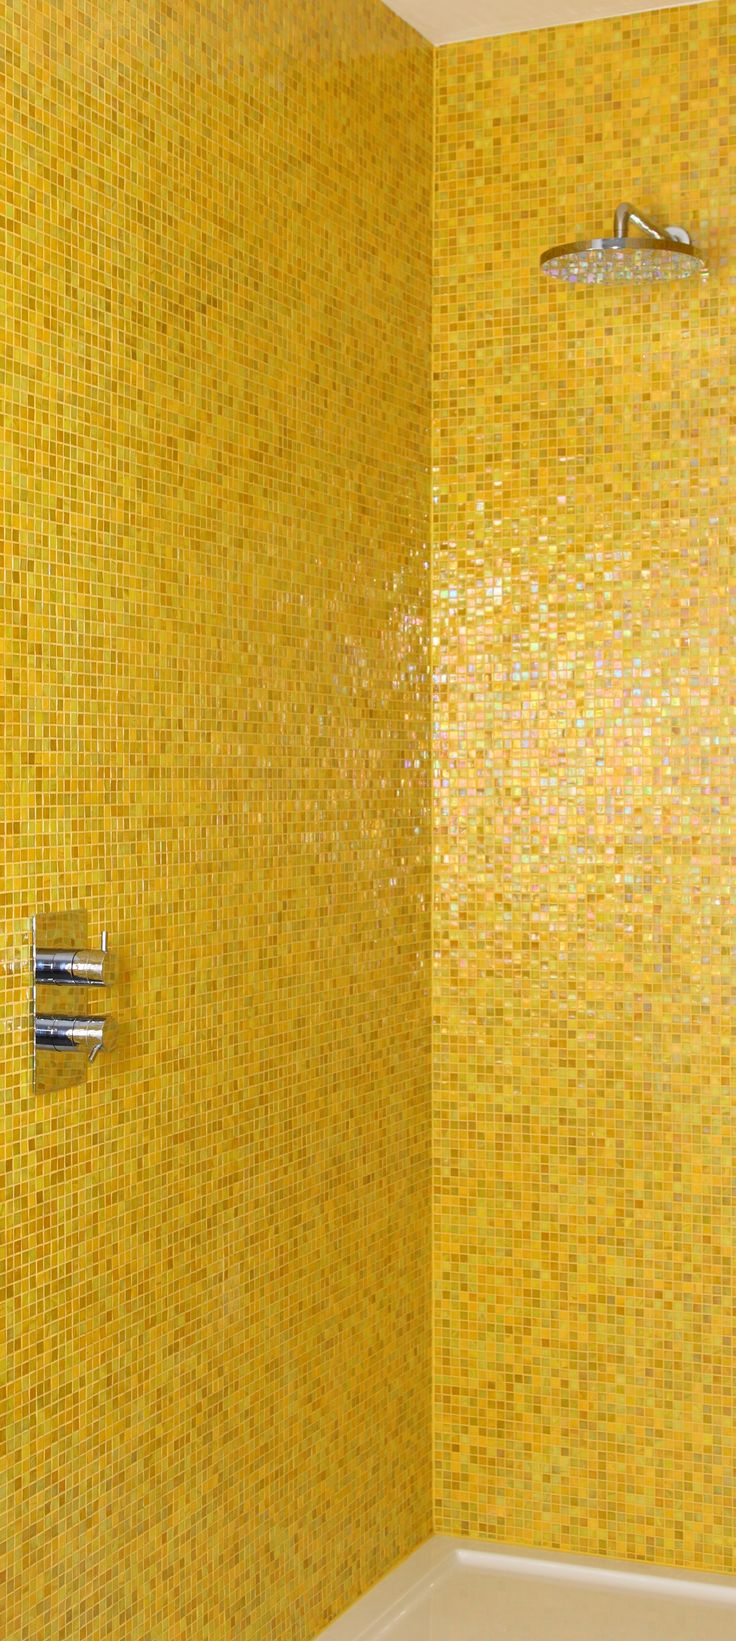 Bold yellow makes such a happy statement in a shower